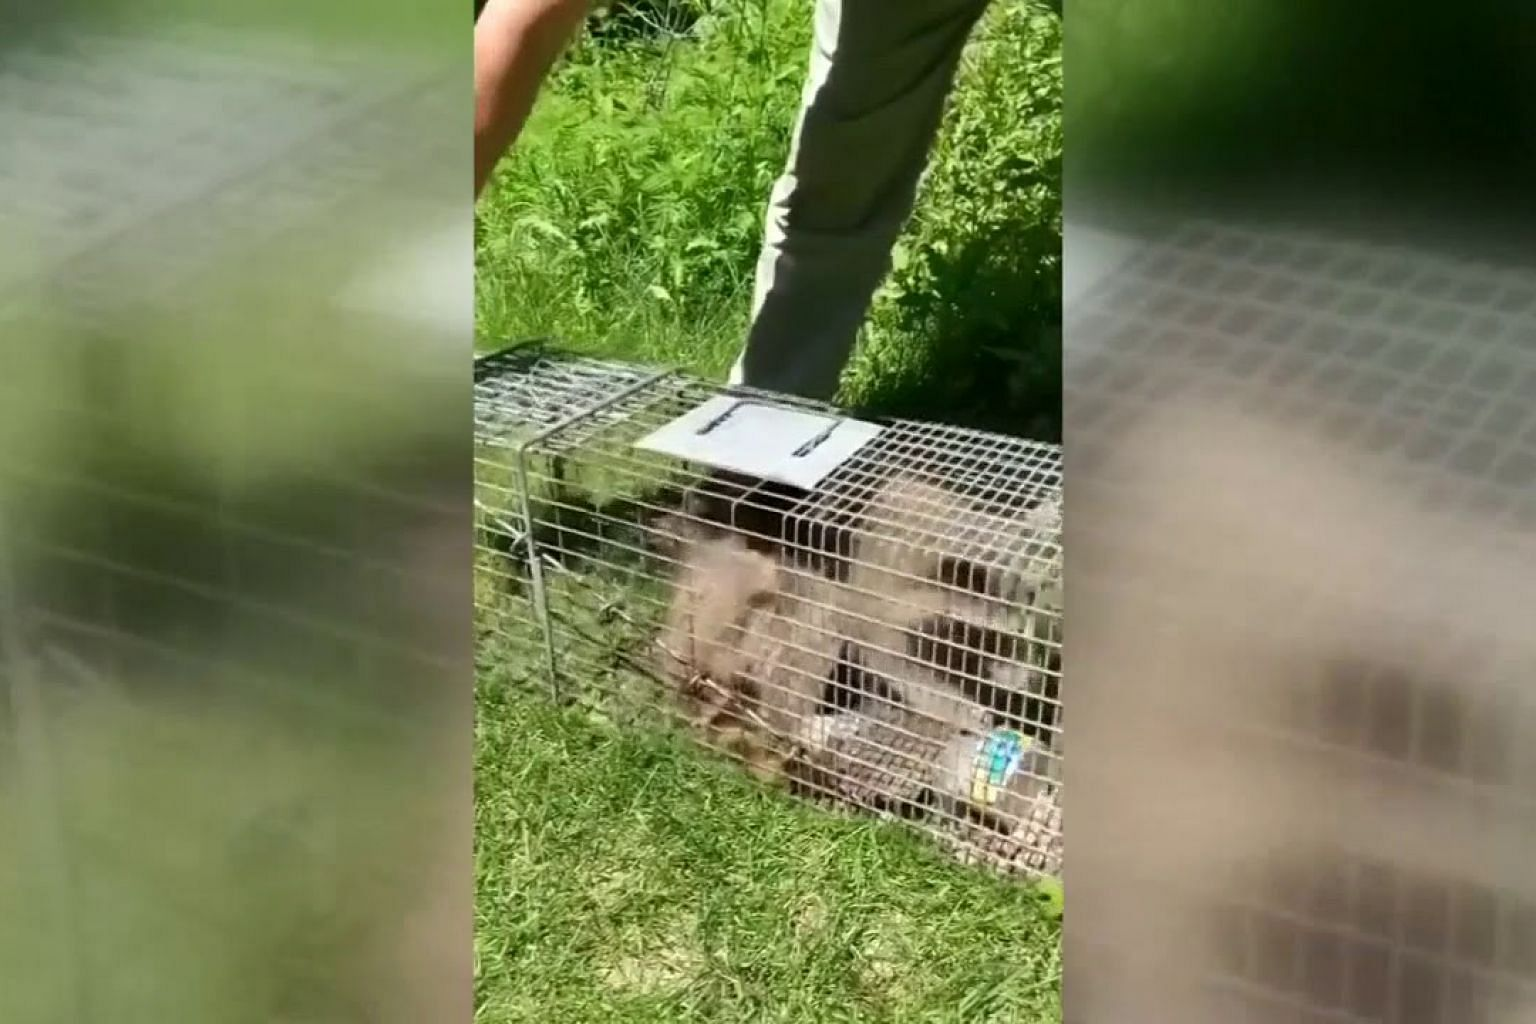 Skyscraping raccoon released into the wild